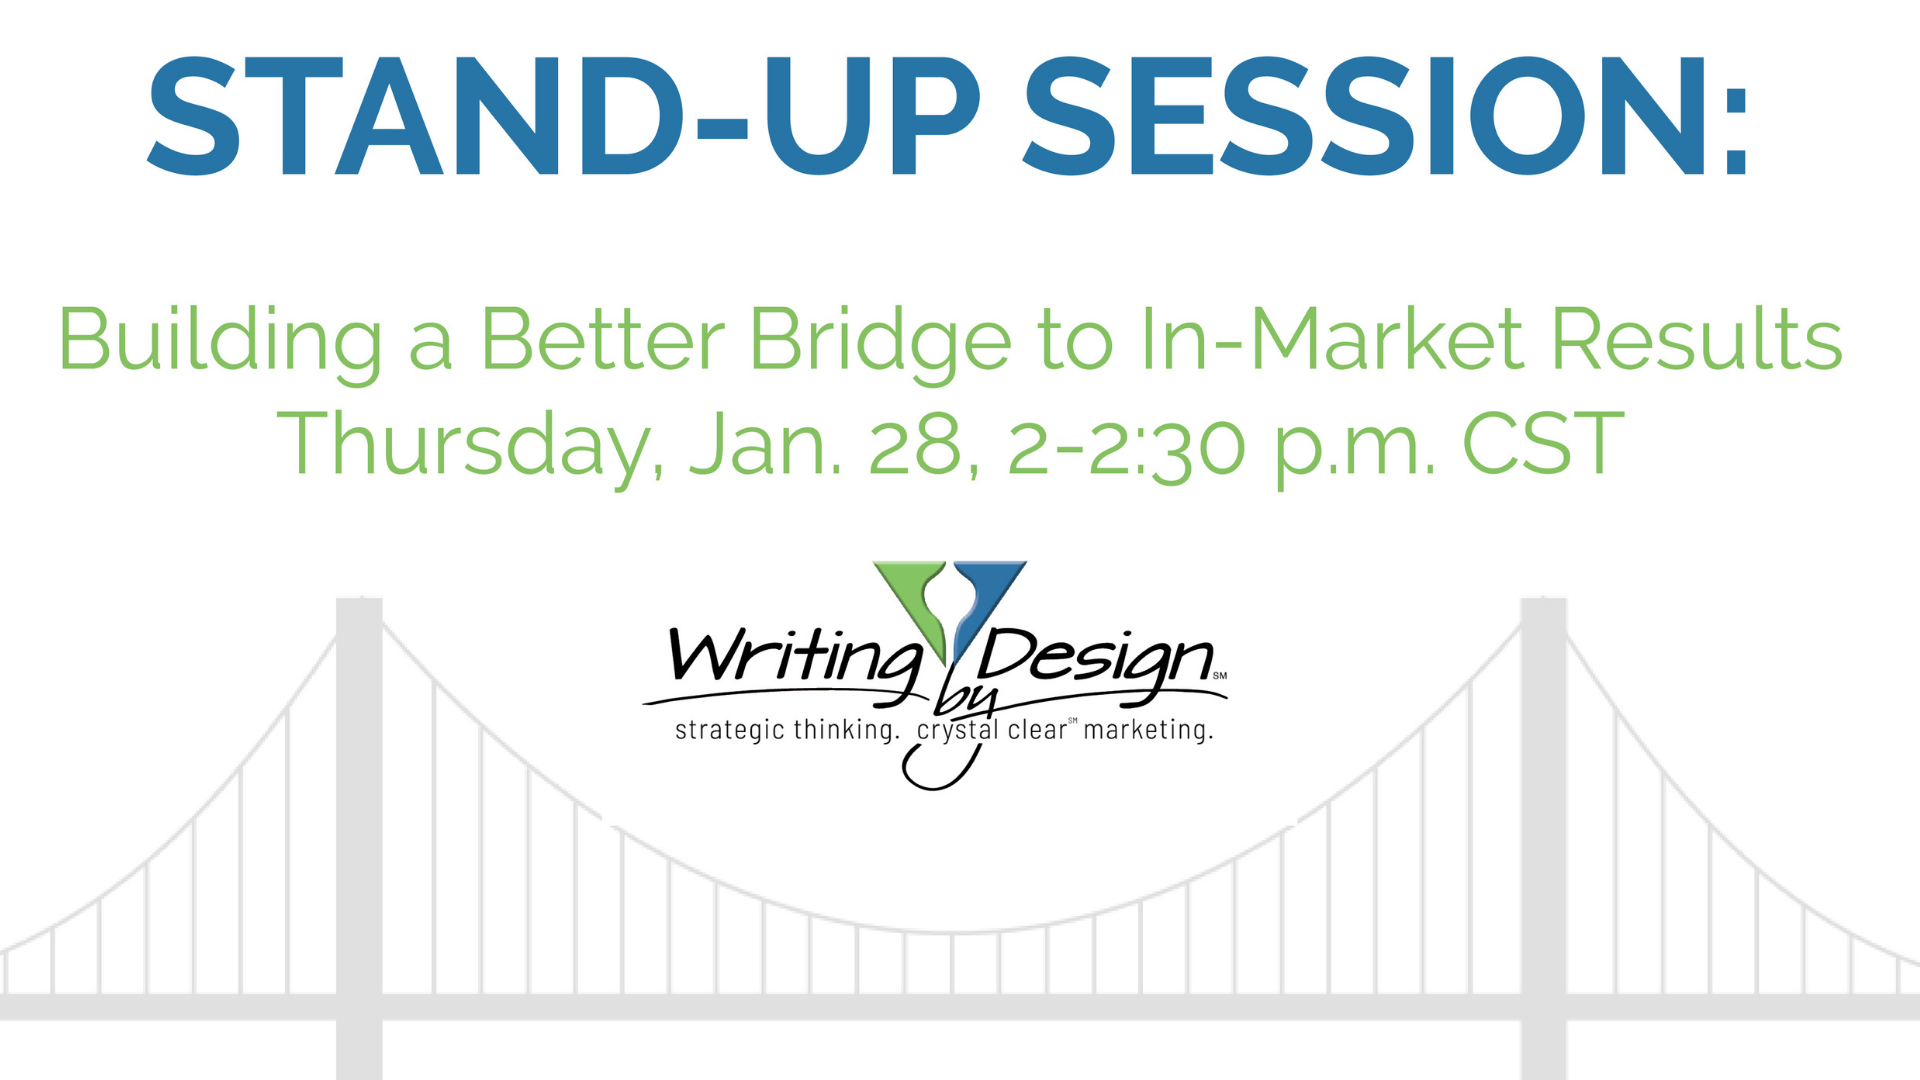 Build a Better Bridge to In-Market Results for your New Product Launch